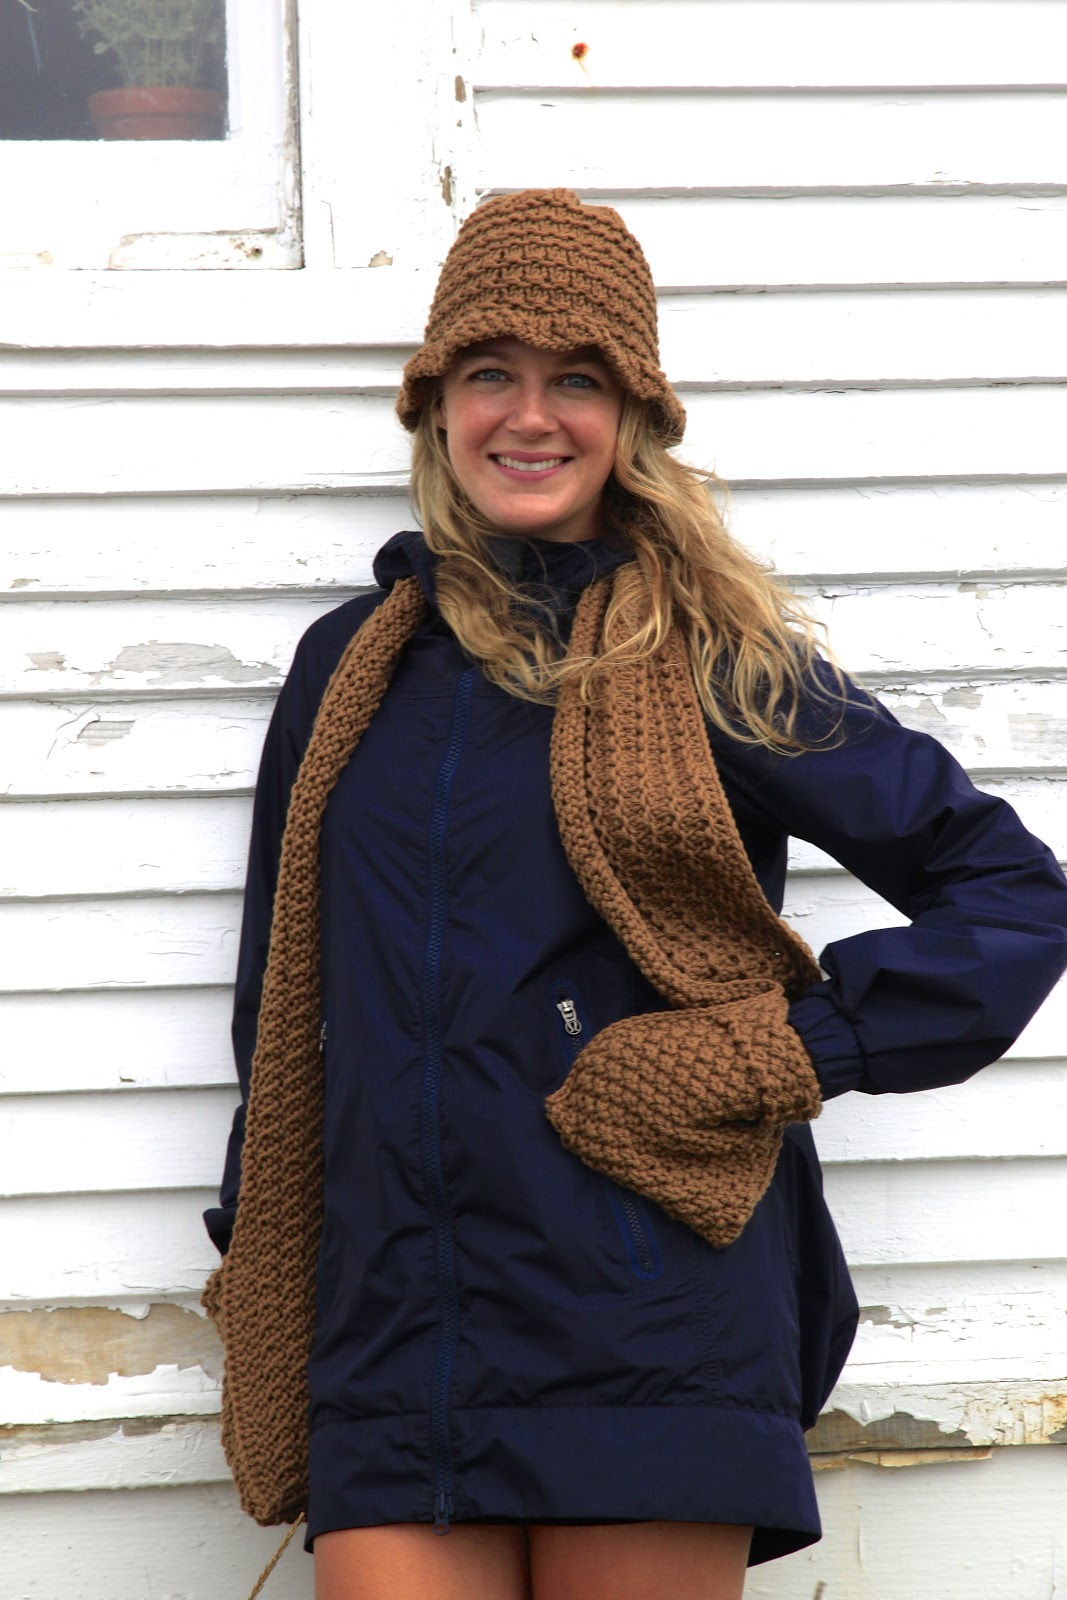 Knitting Patterns Scarves With Pockets : Rockin Knits: Is That a Scarf With Pockets, Ellen?!